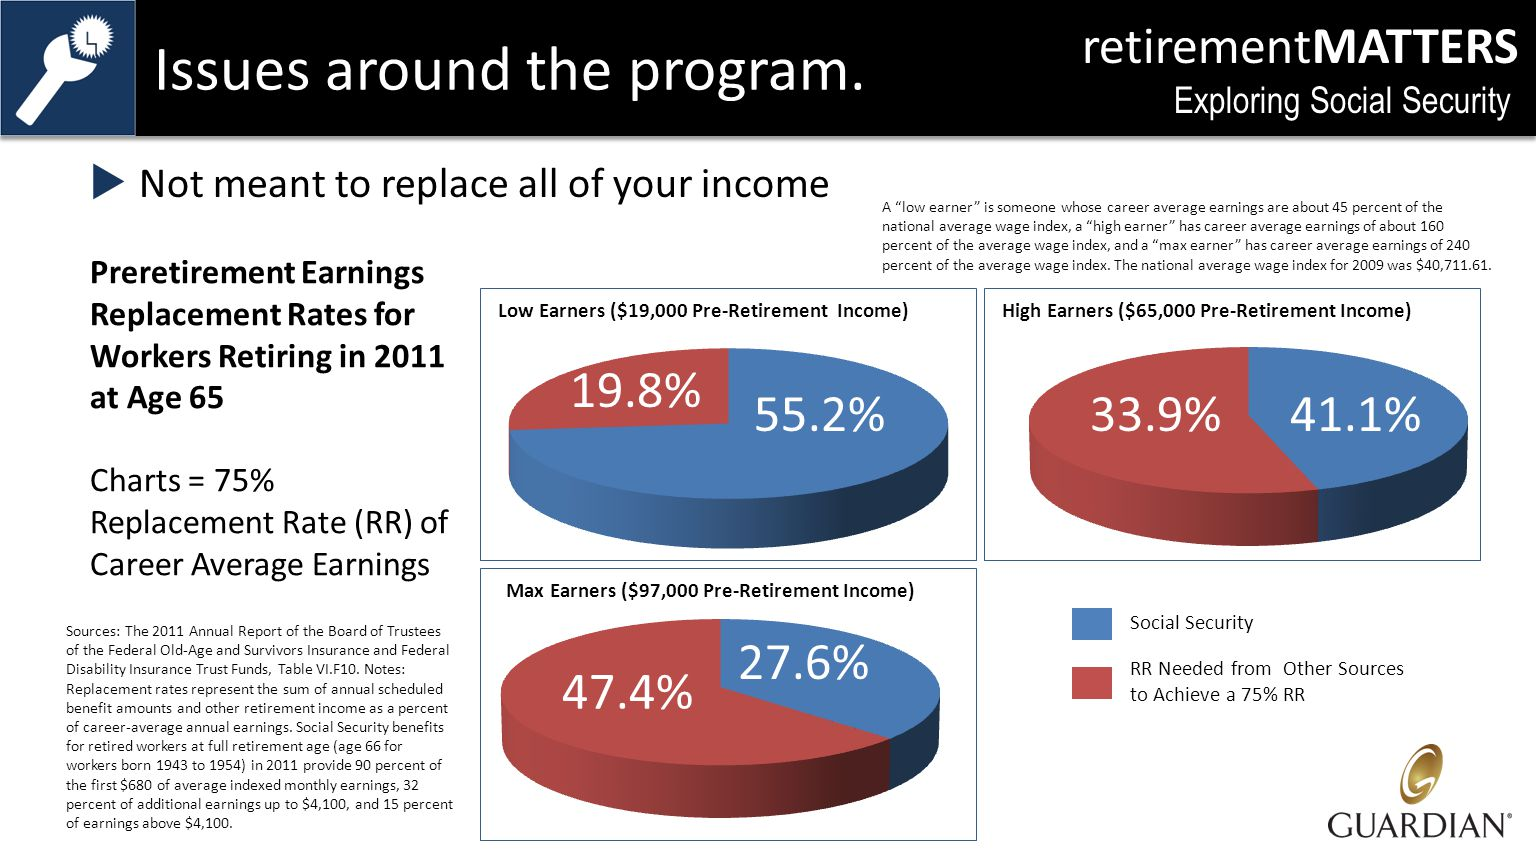 retirementMATTERS Exploring Social Security Issues around the program.